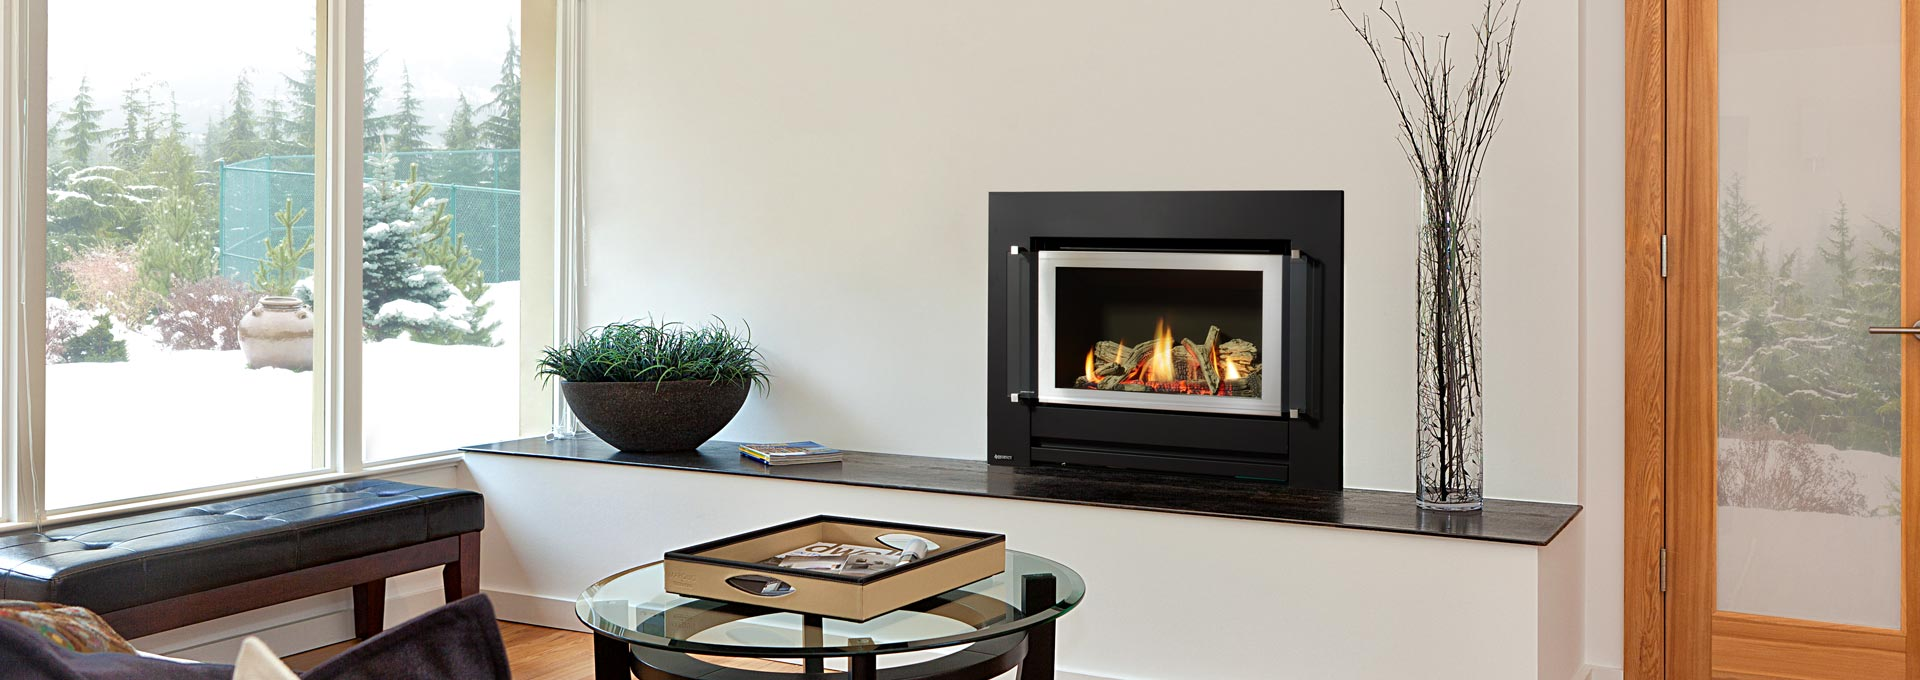 Picking the perfect fireplace for your home